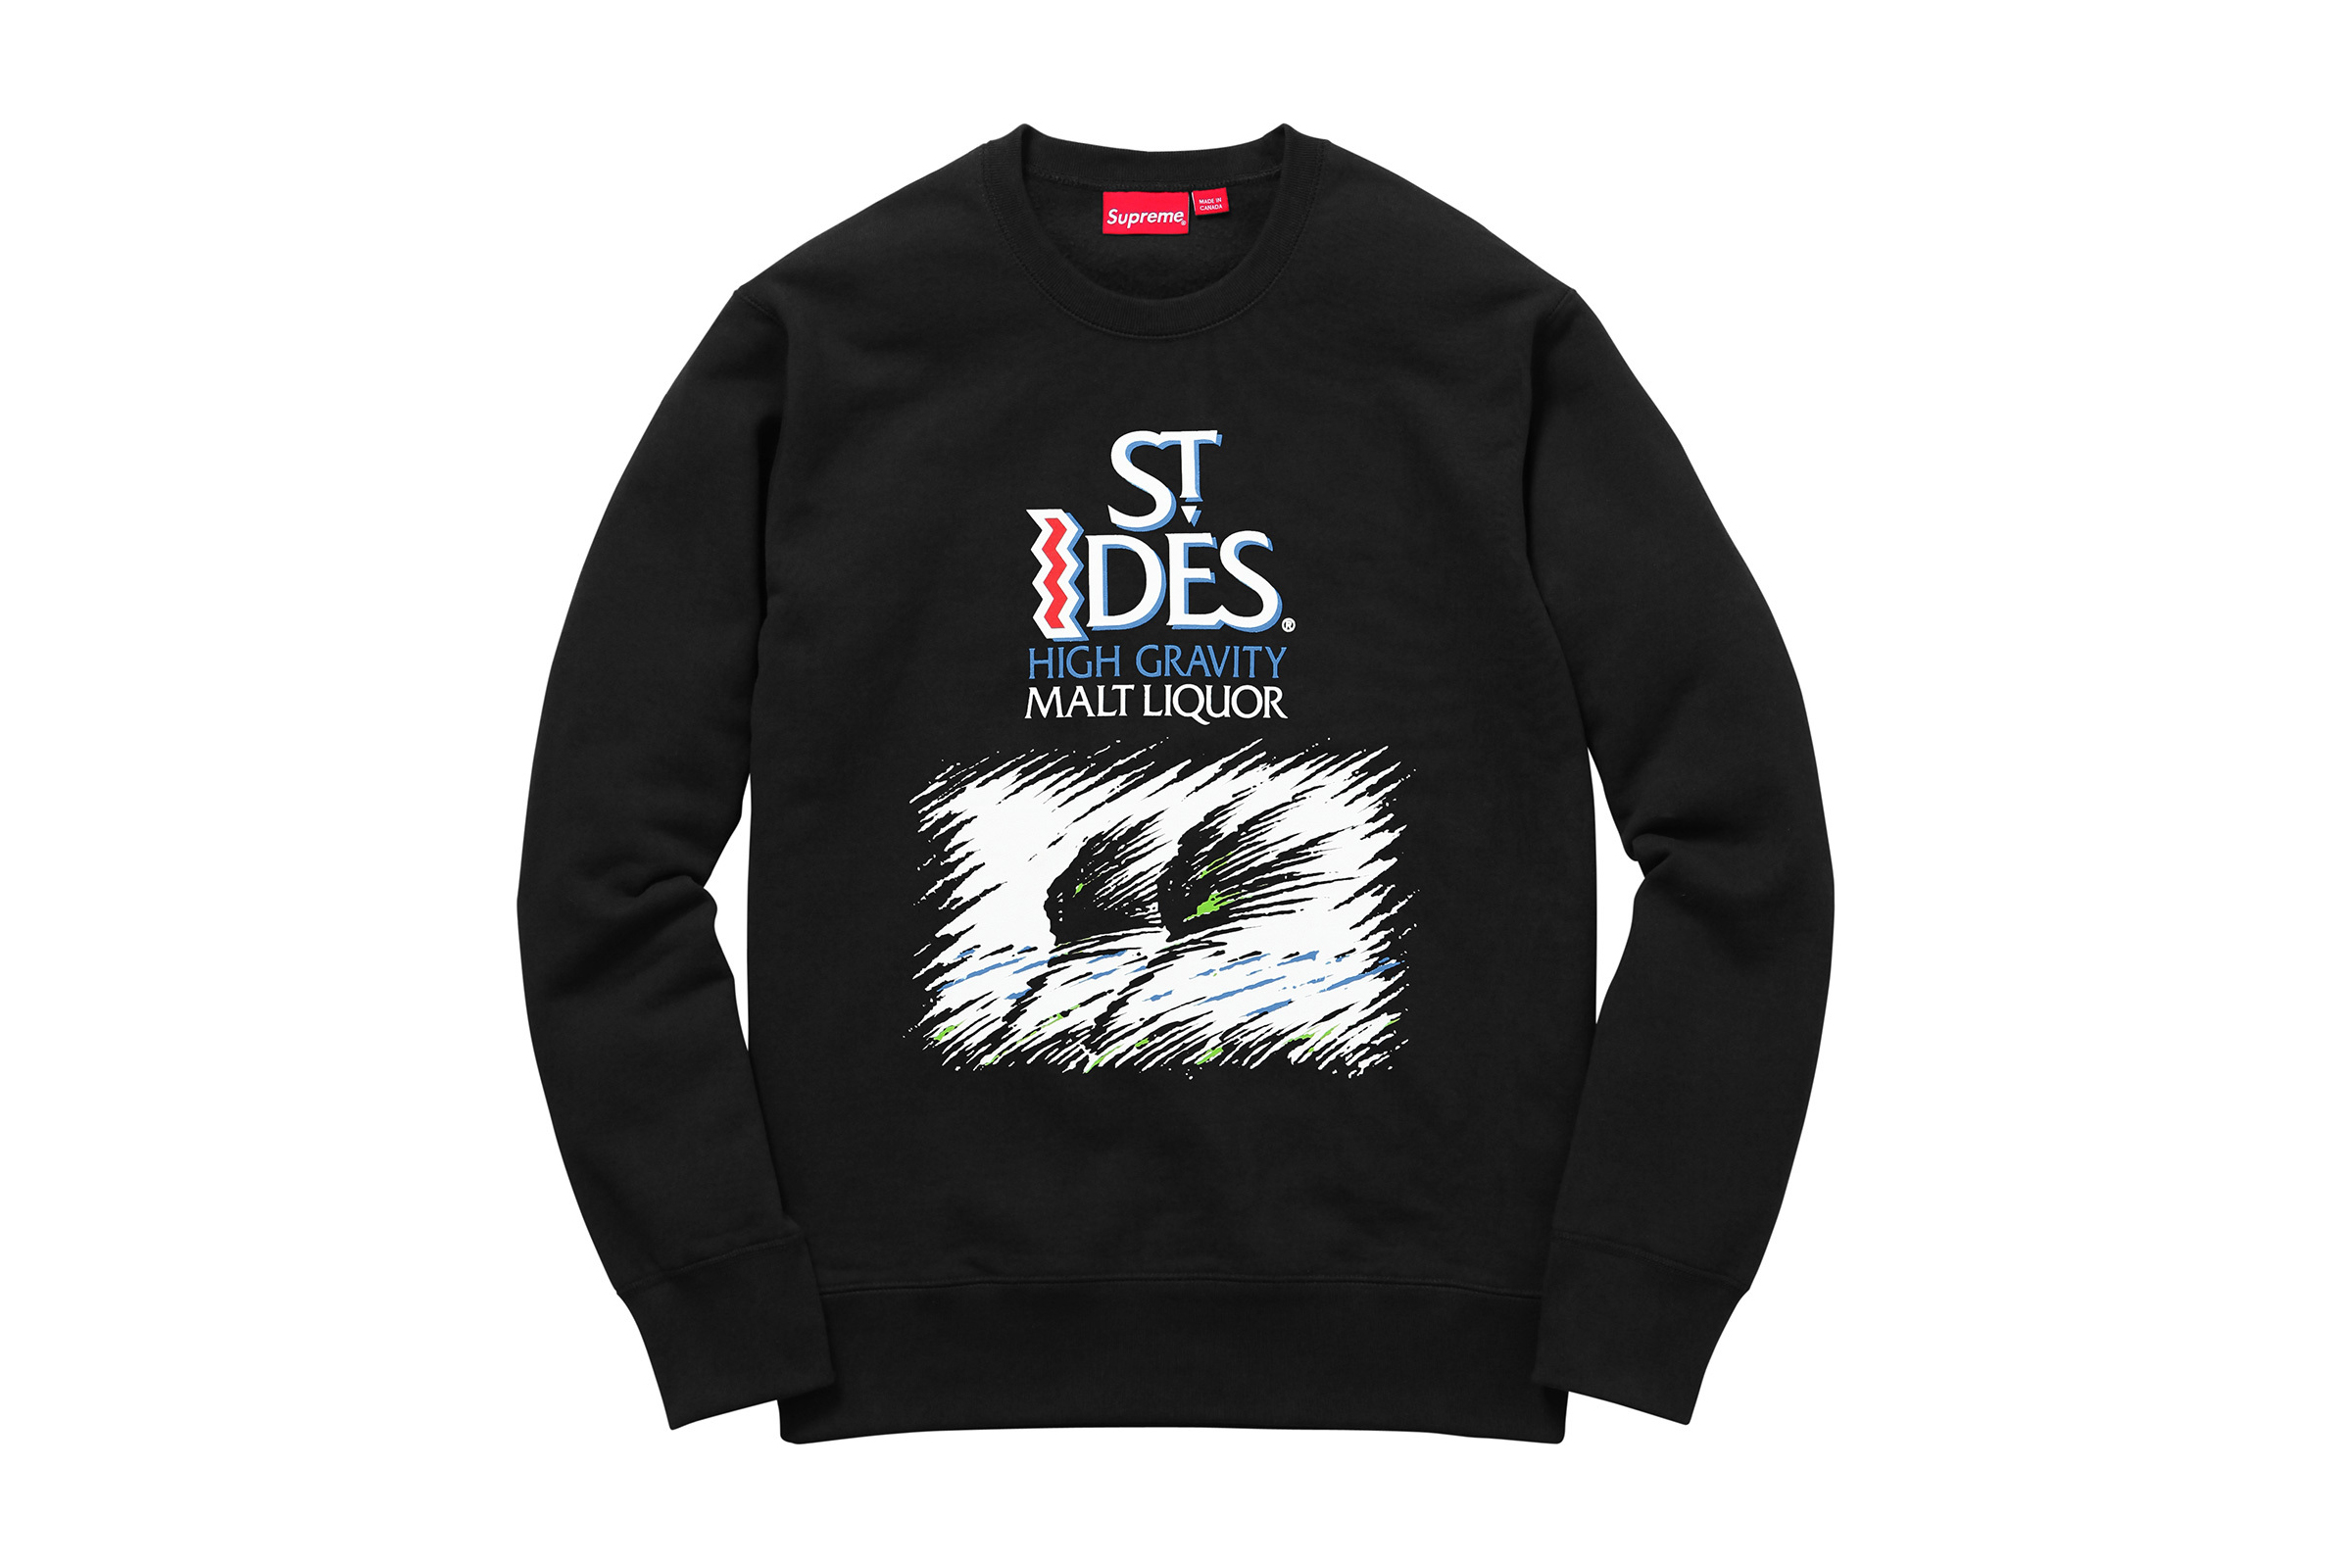 Supreme Teams up With St. Ides for a Surprise Collaborative Capsule